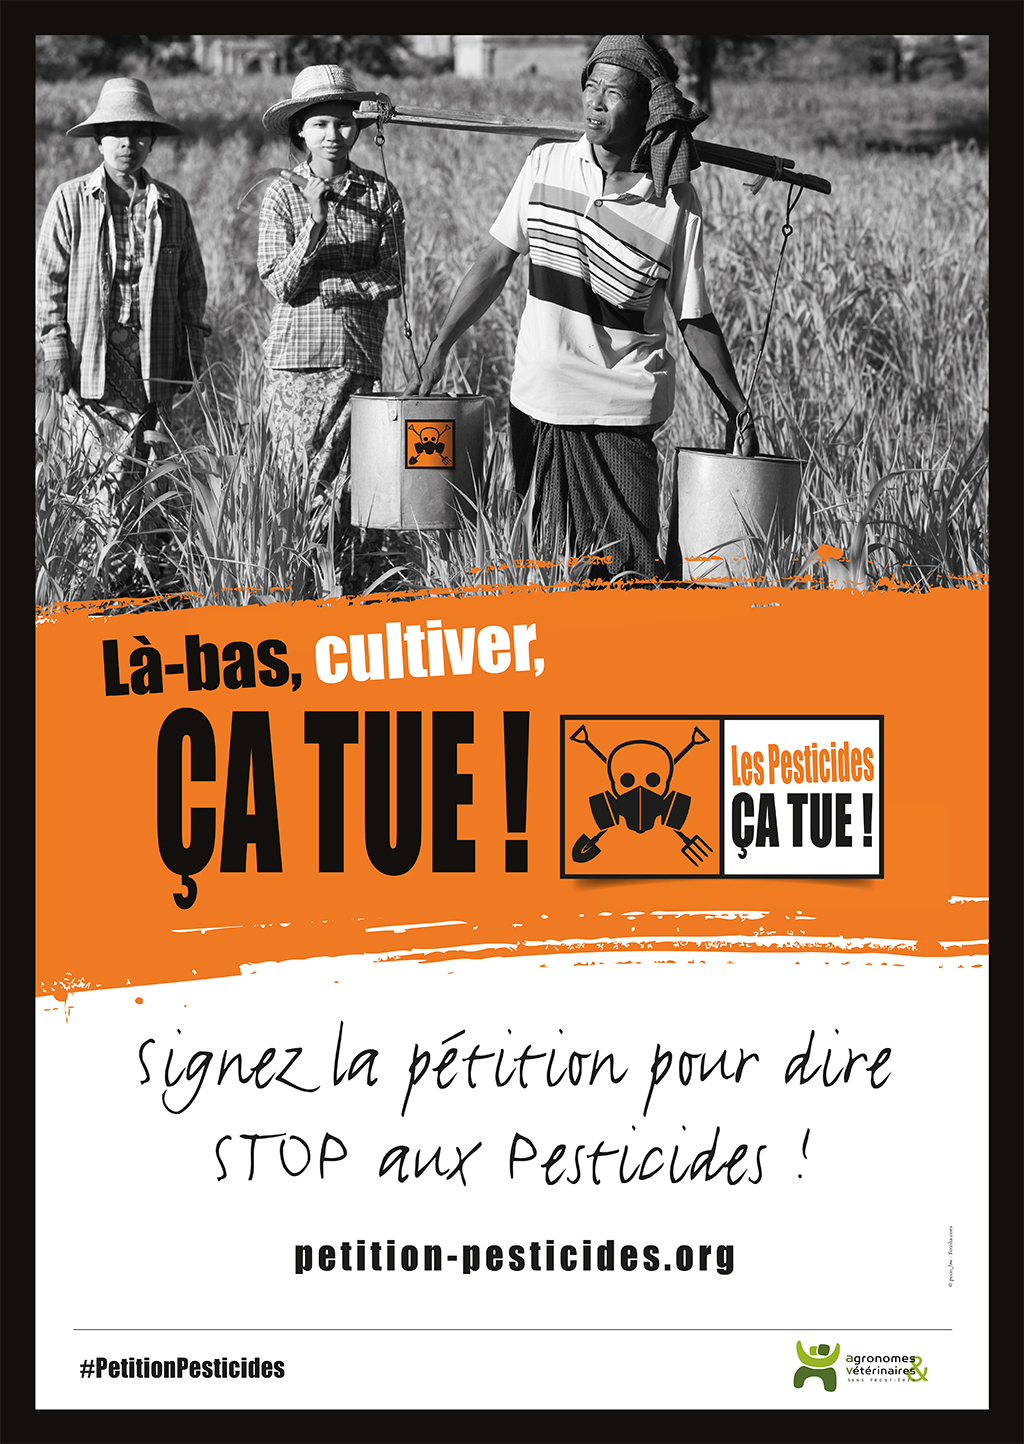 Image Stop pesticides